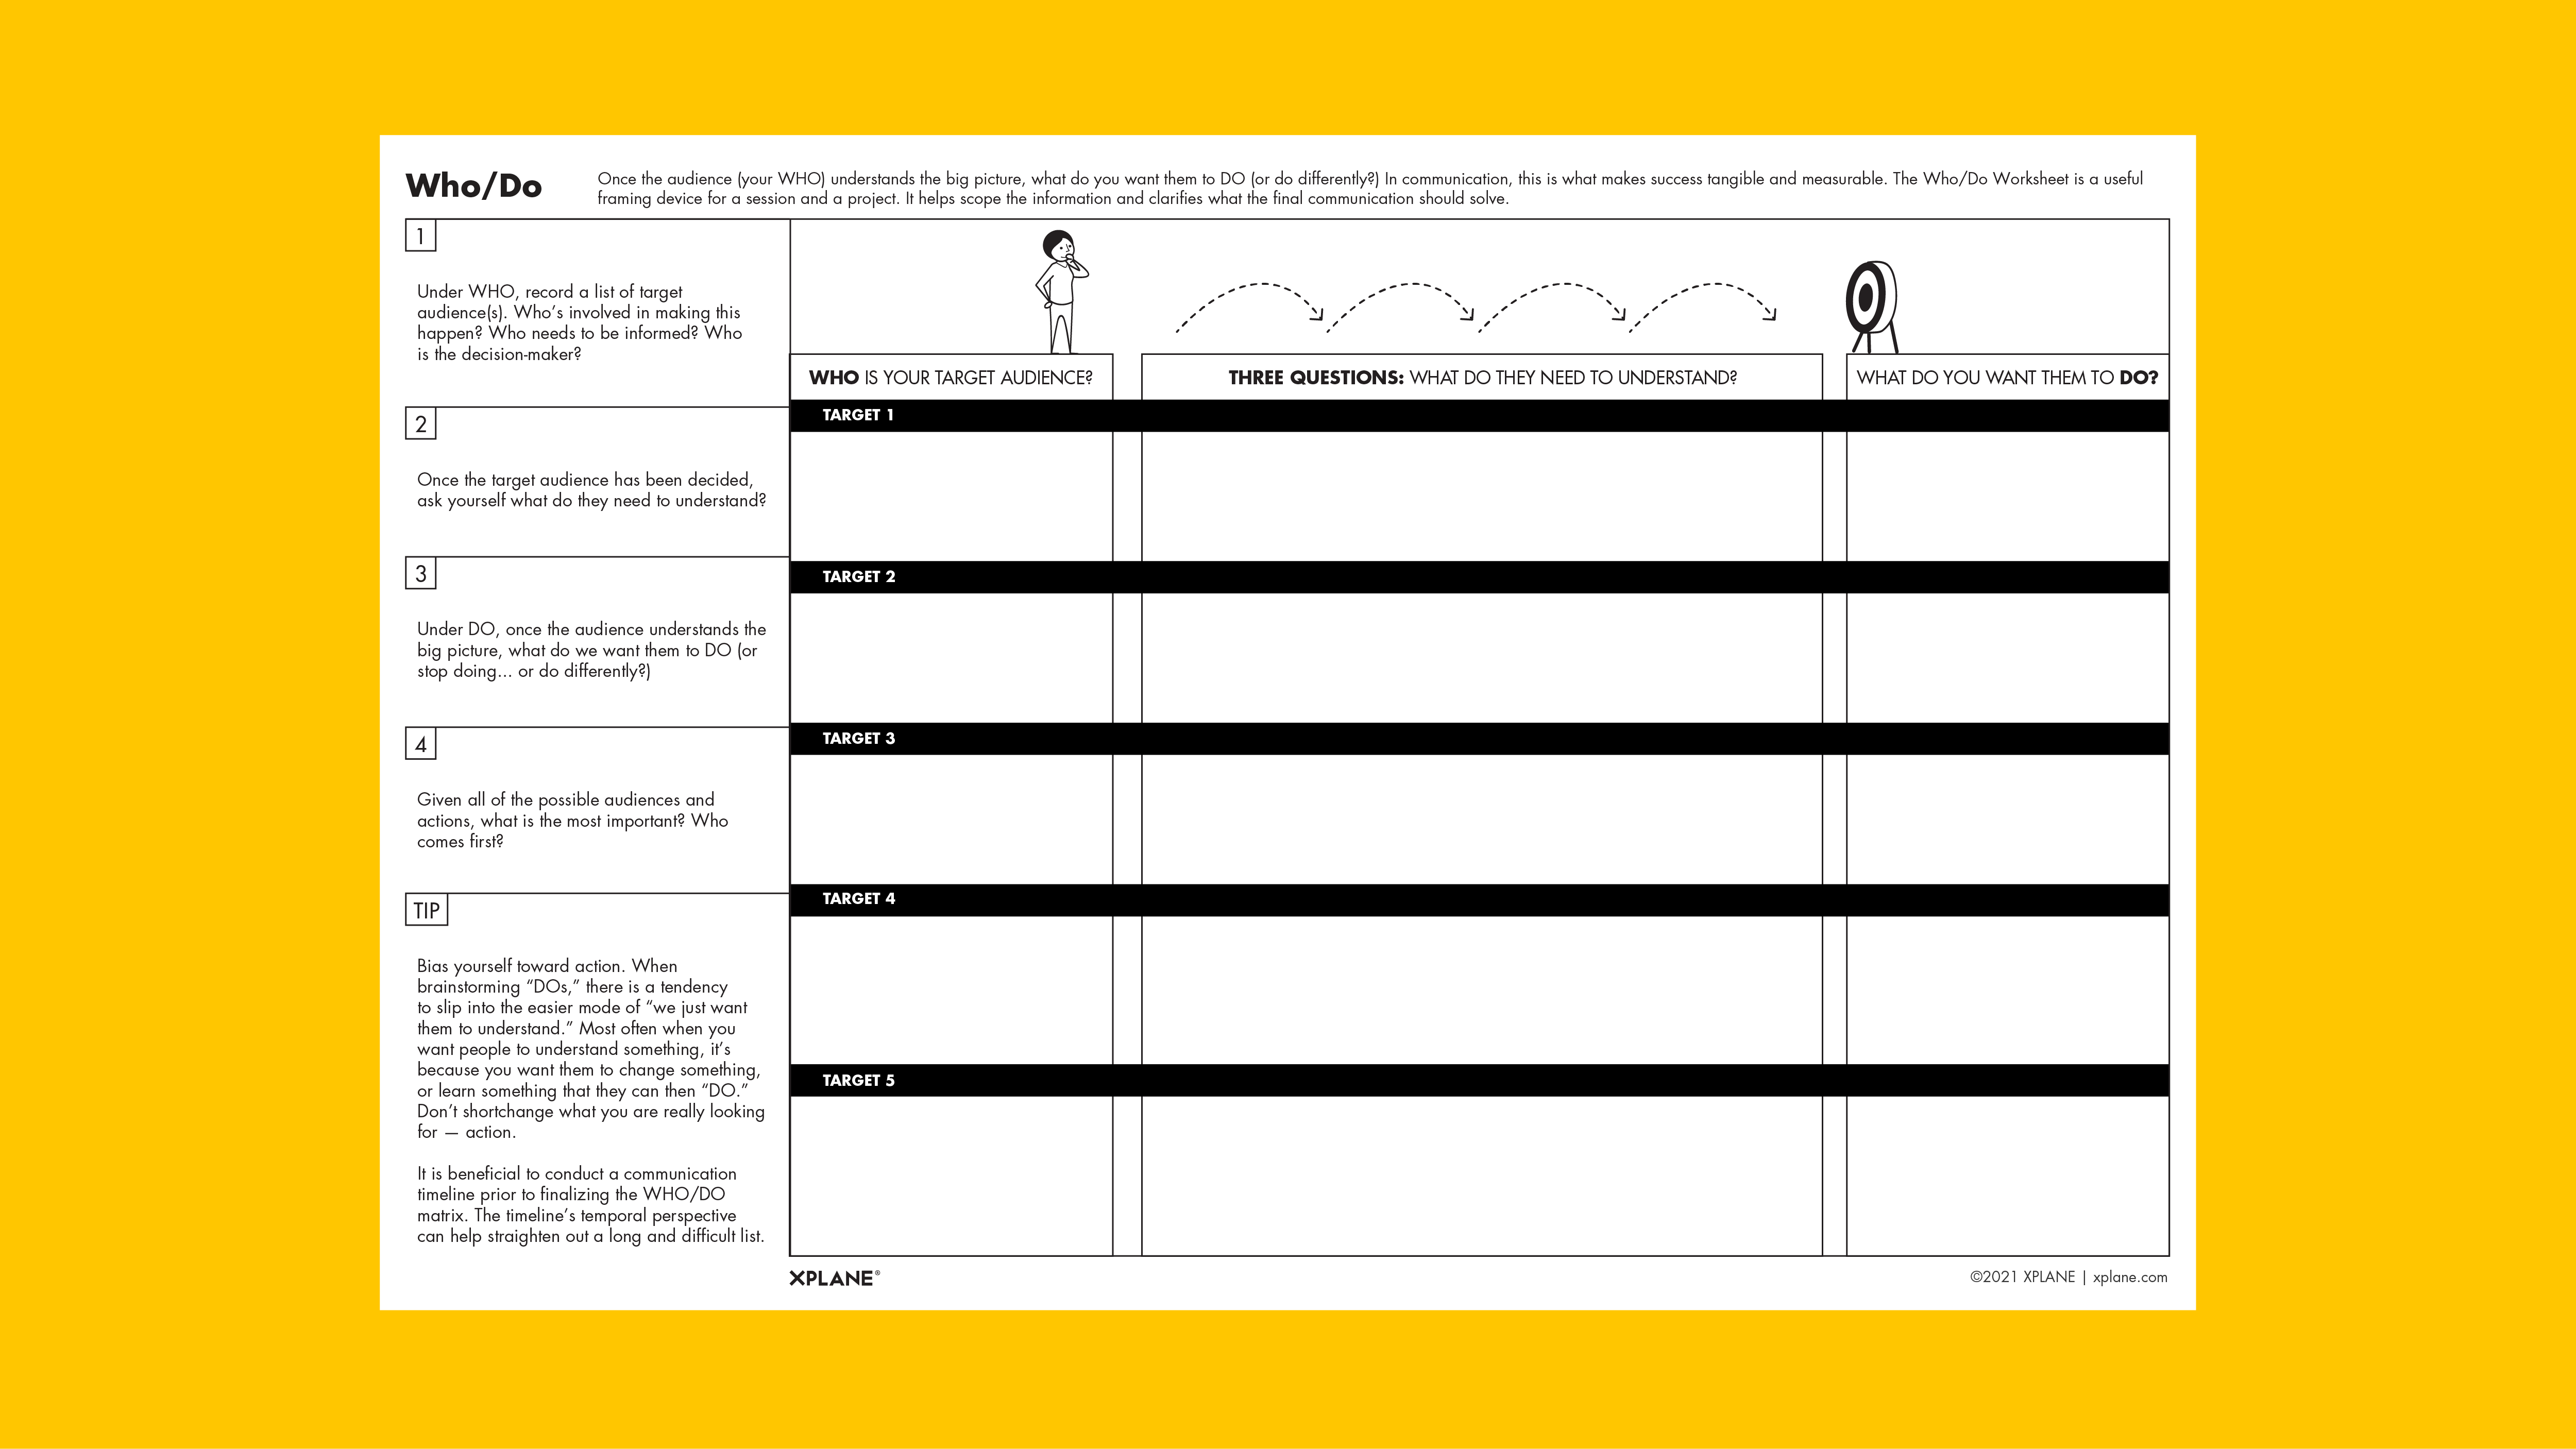 Who/Do worksheet against yellow background